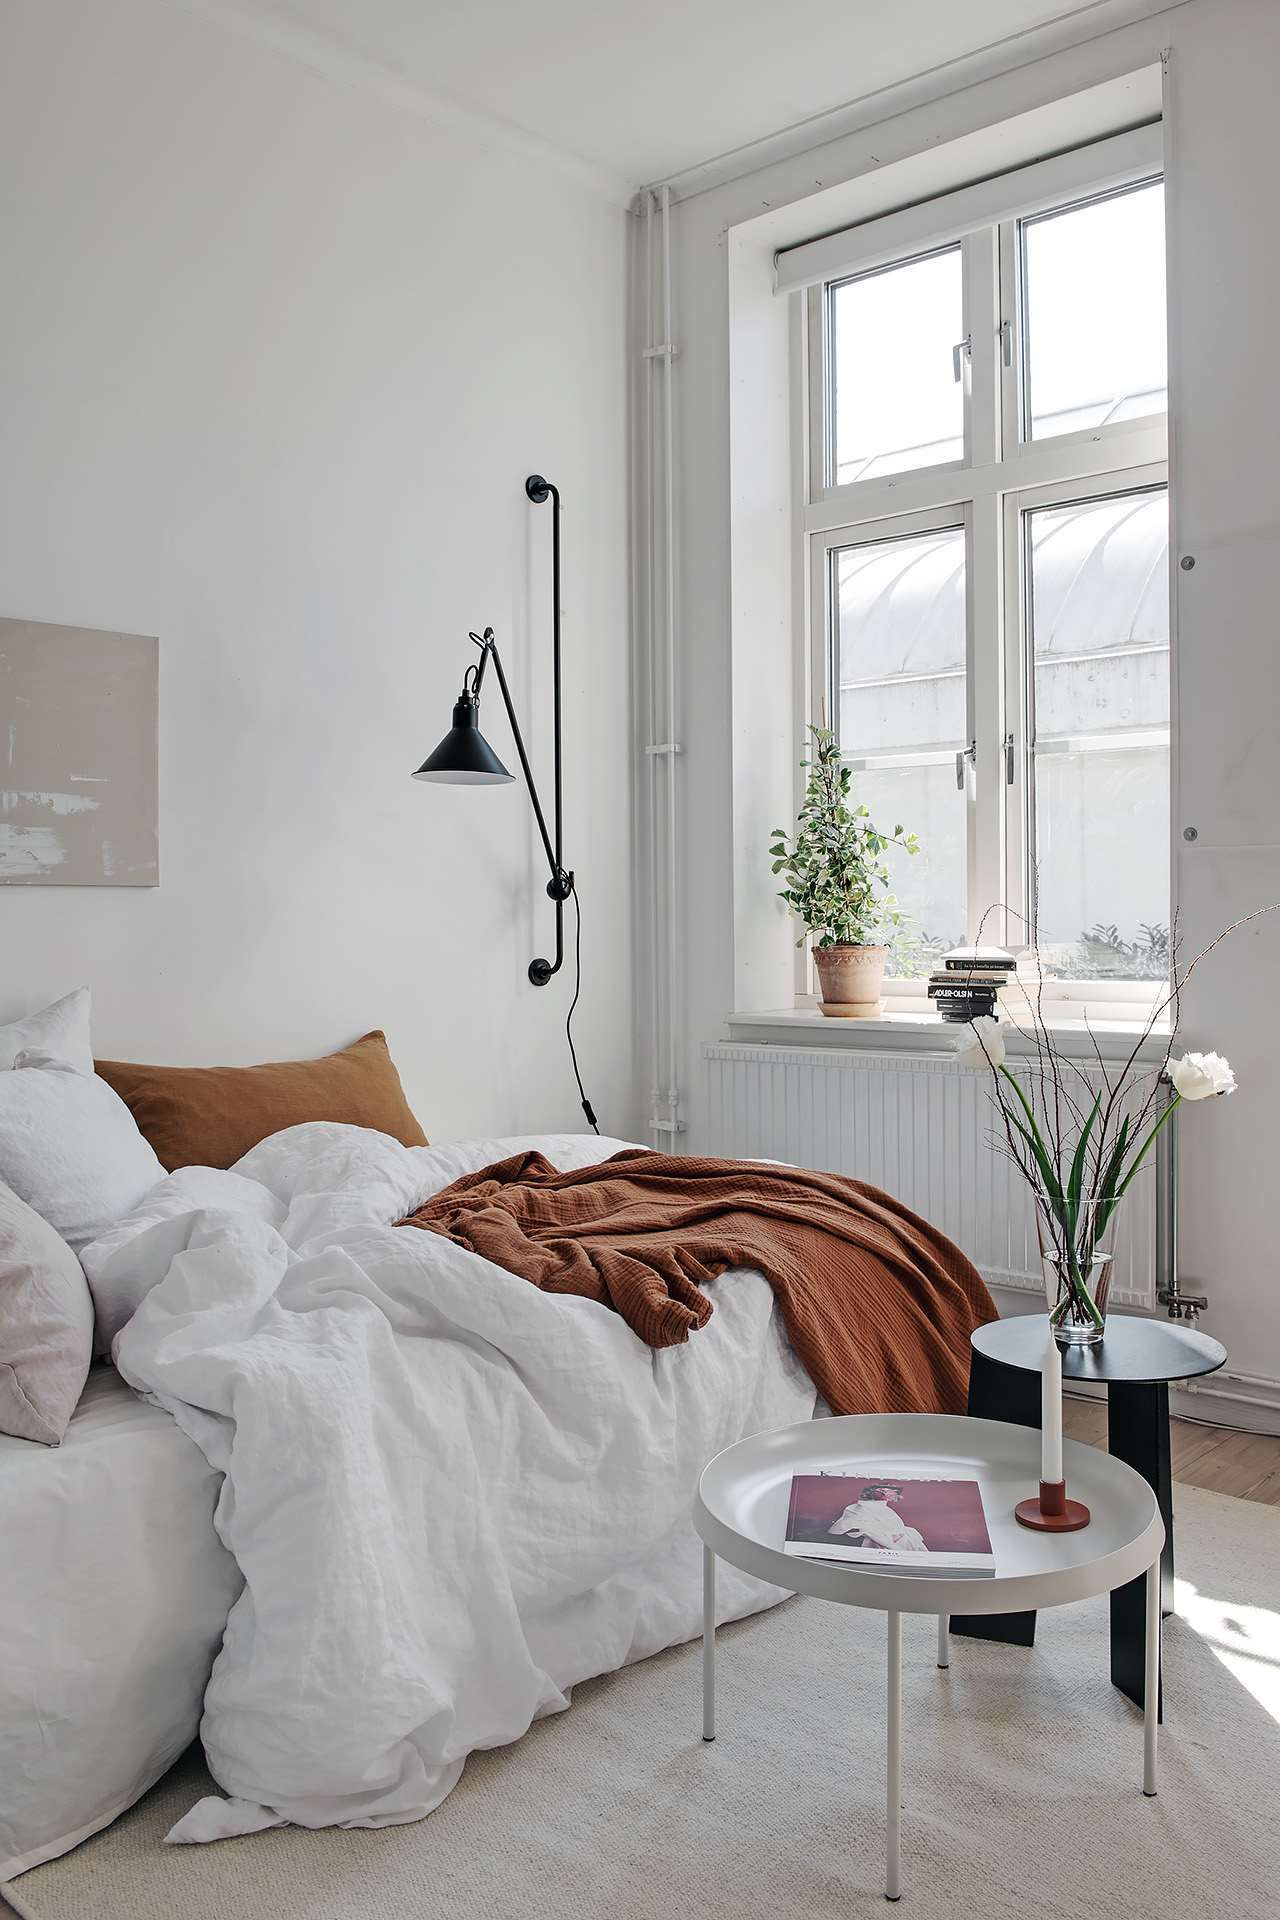 Small Yet Stylish Studio Home Via Coco Lapine Design Blog